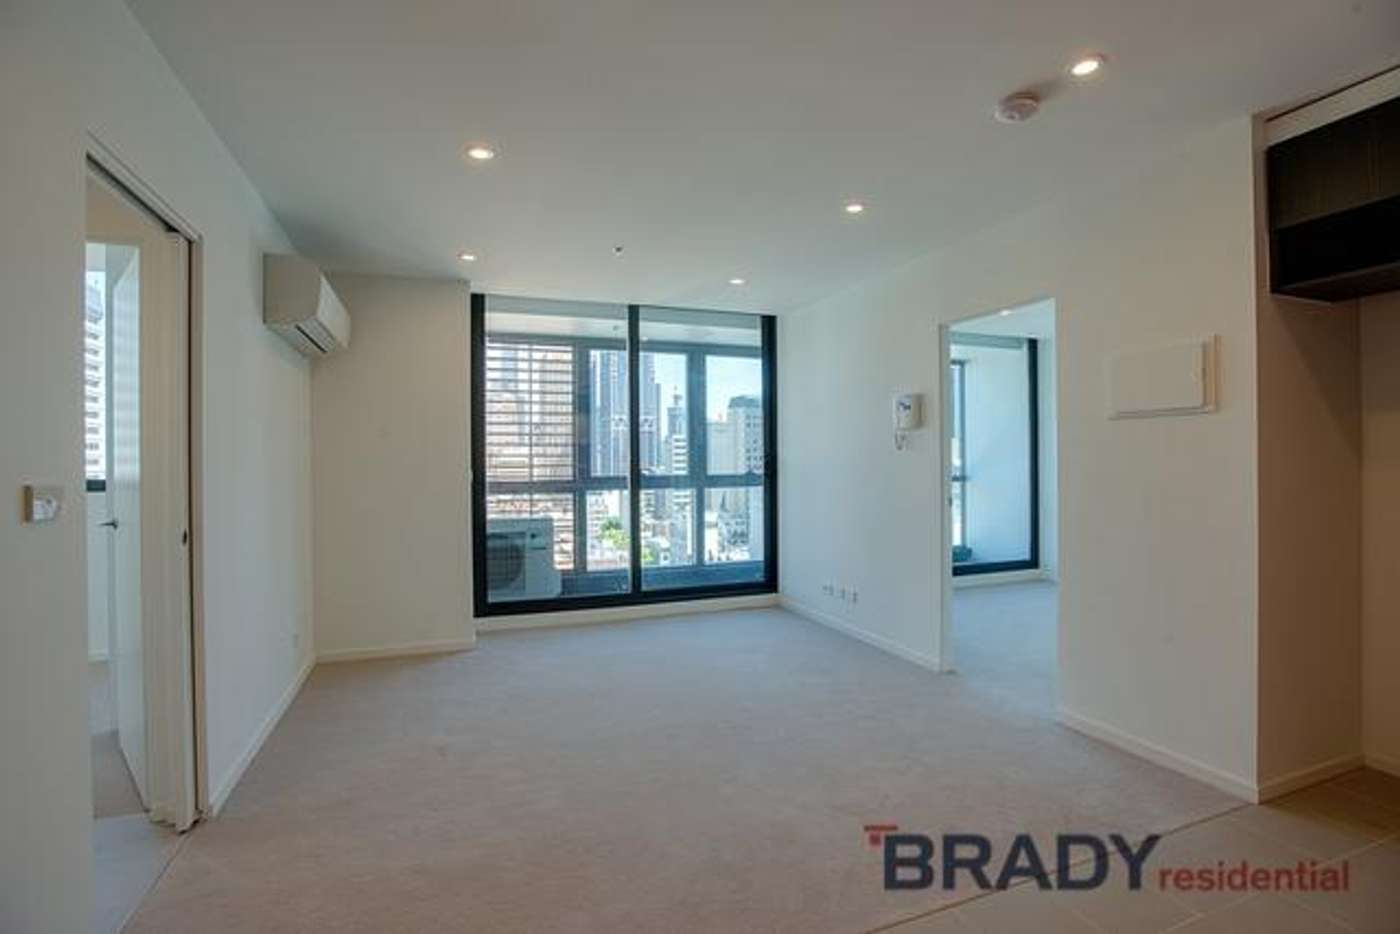 Main view of Homely apartment listing, 2901/8 Sutherland Street, Melbourne VIC 3000